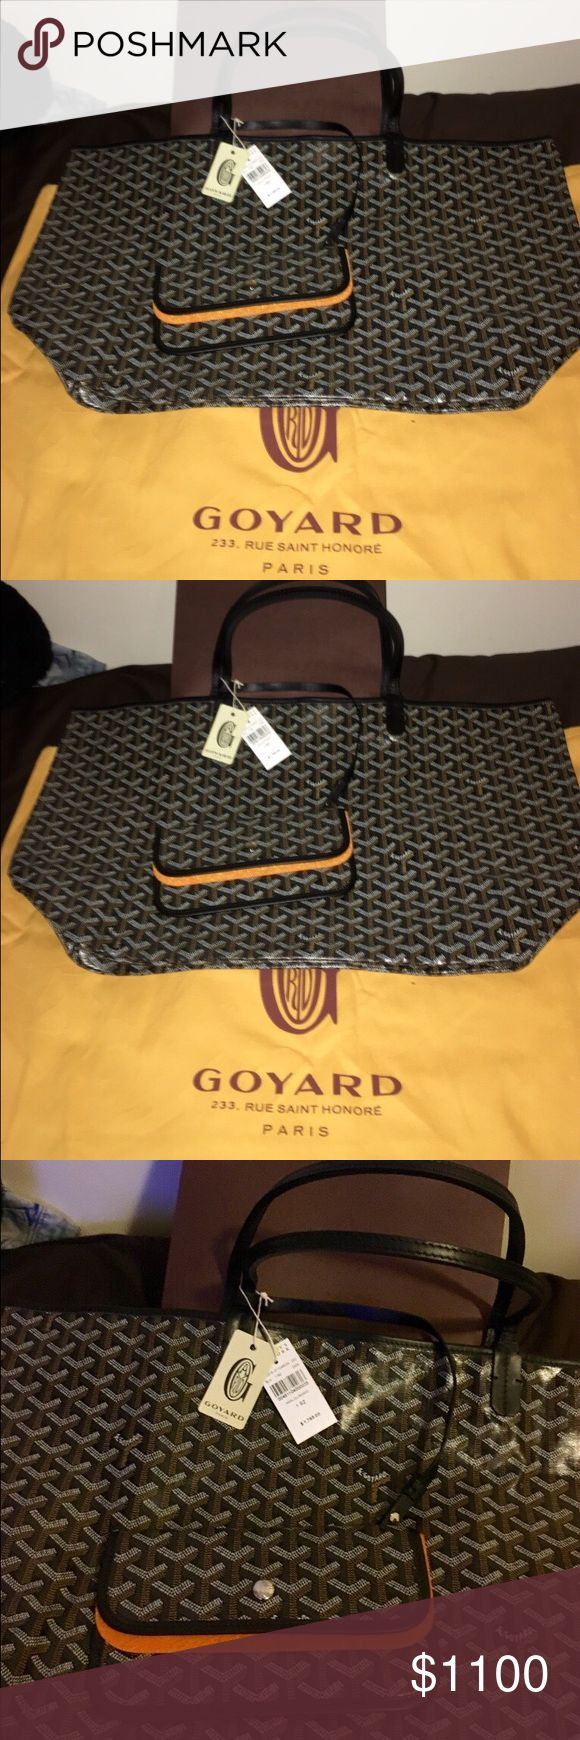 Goyard St. Louis PM - Black Goyard St. Louis PM - Black. NWT. 100% Authentic. Posh concierge authentication included. Purchased @ Barneys. Employee discount is on receipt so for privacy purposes I cannot & will not post it, but bag is brand new & authentic. It's the wrong color, person got the wrong one for me. Use code: FREE for free shipping. Goyard Bags Totes